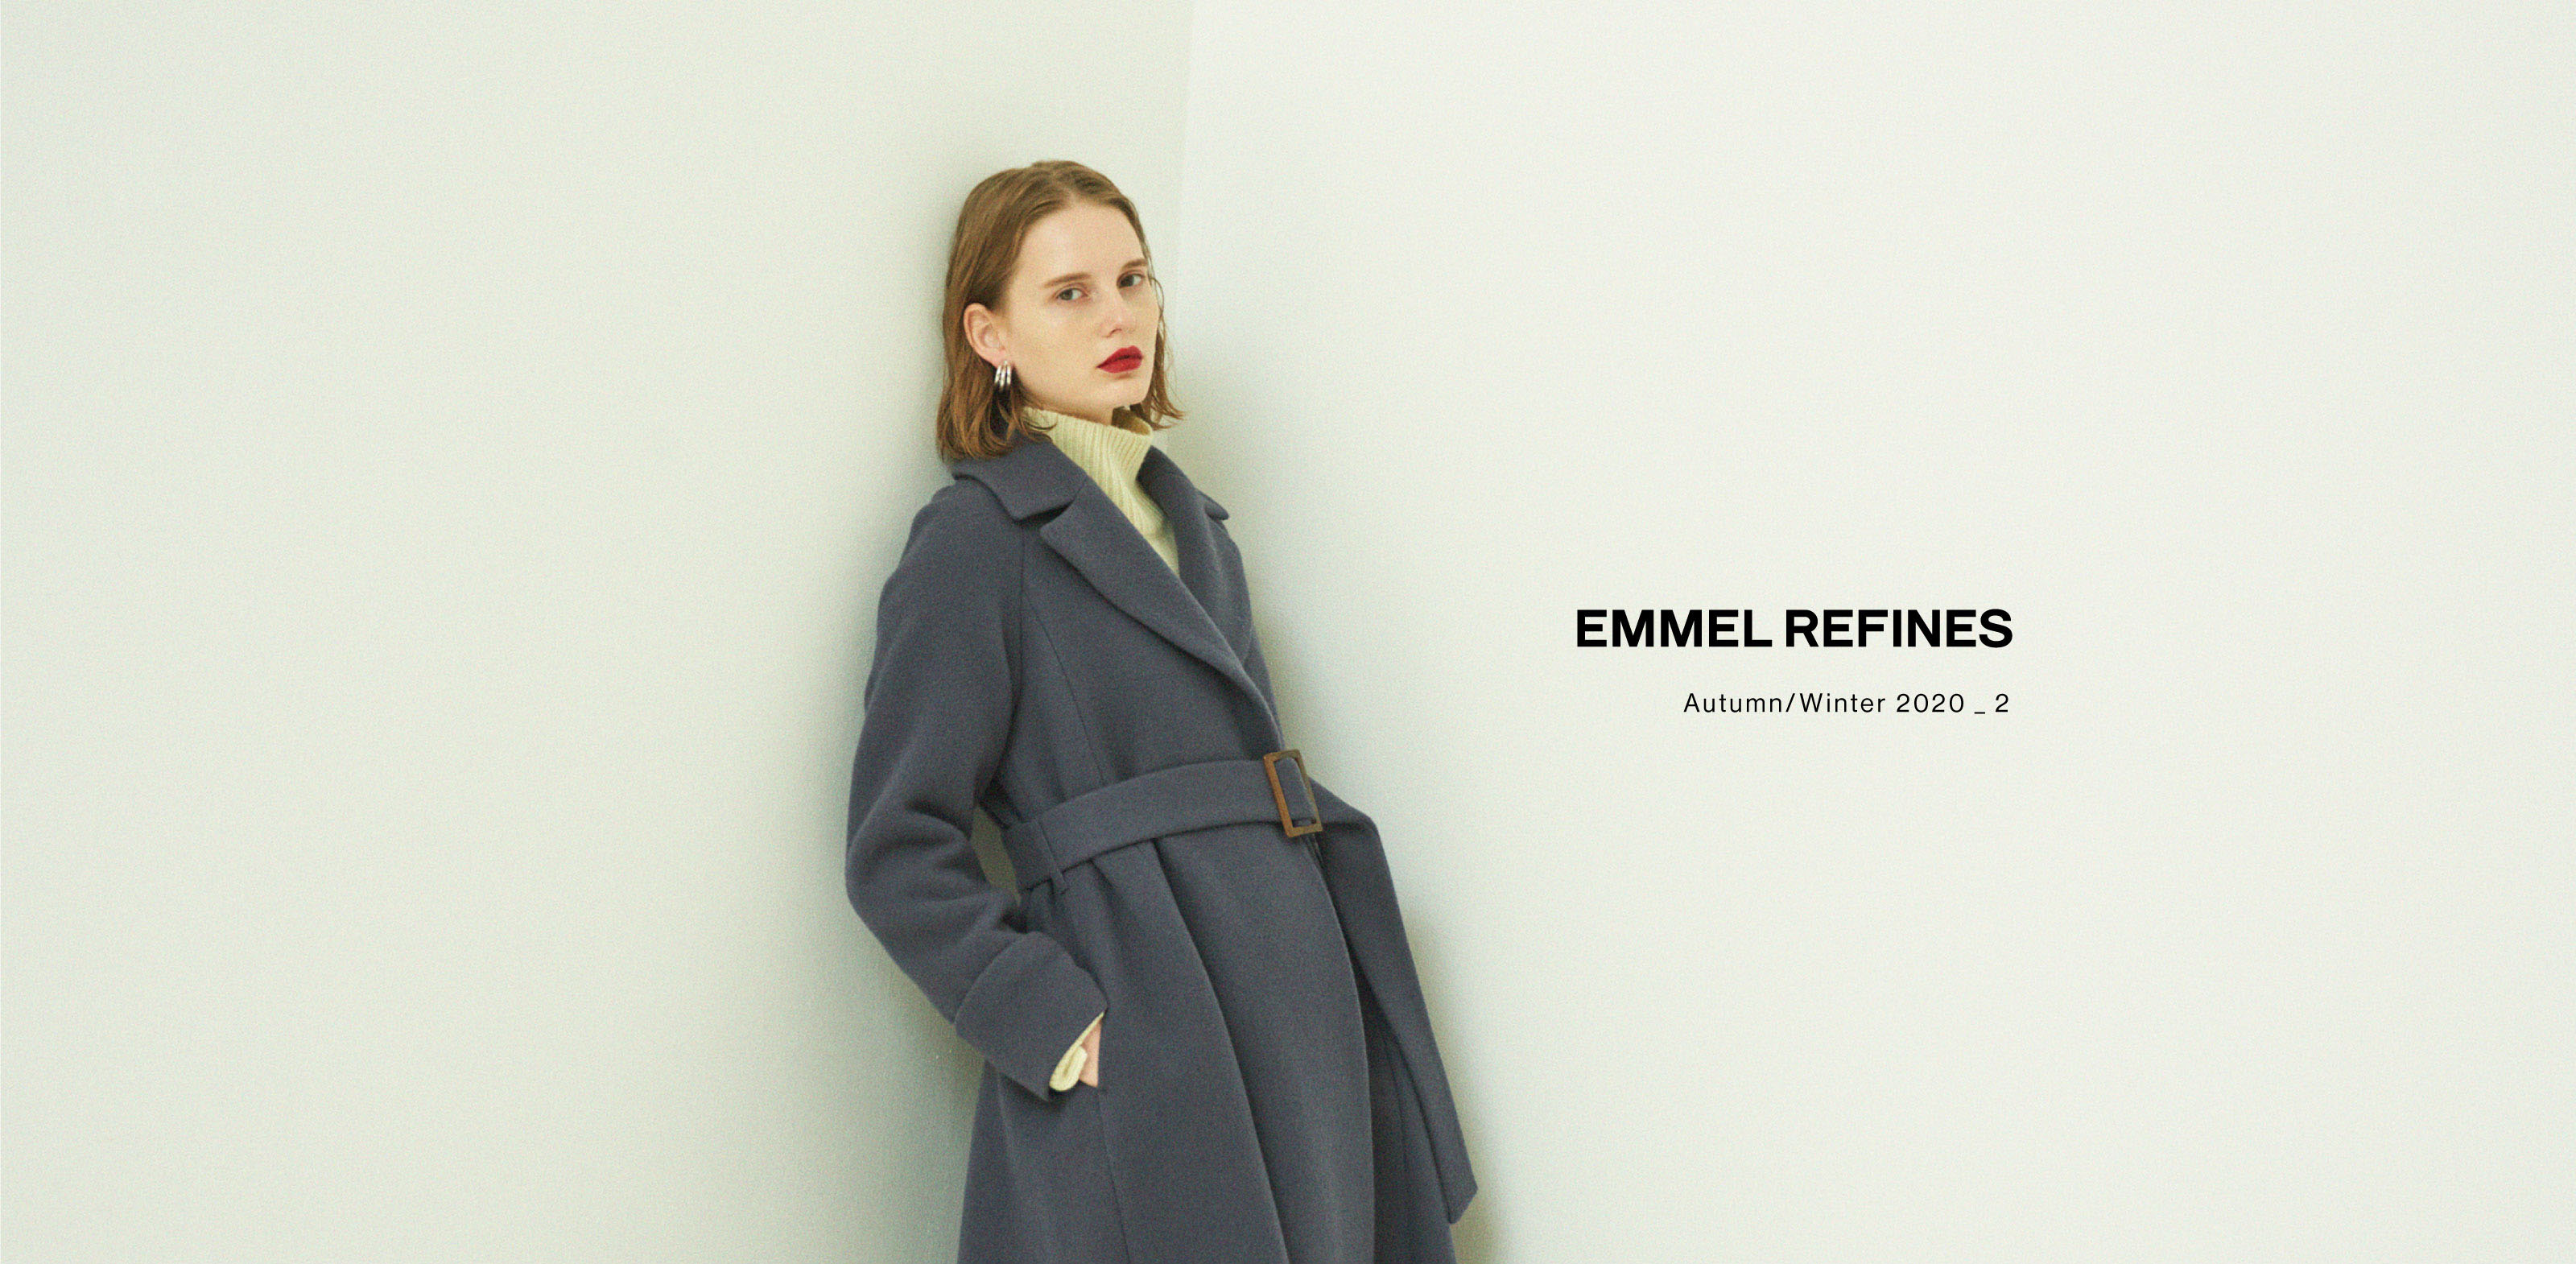 EMMEL REFINES Autumn/Winter 2020_2